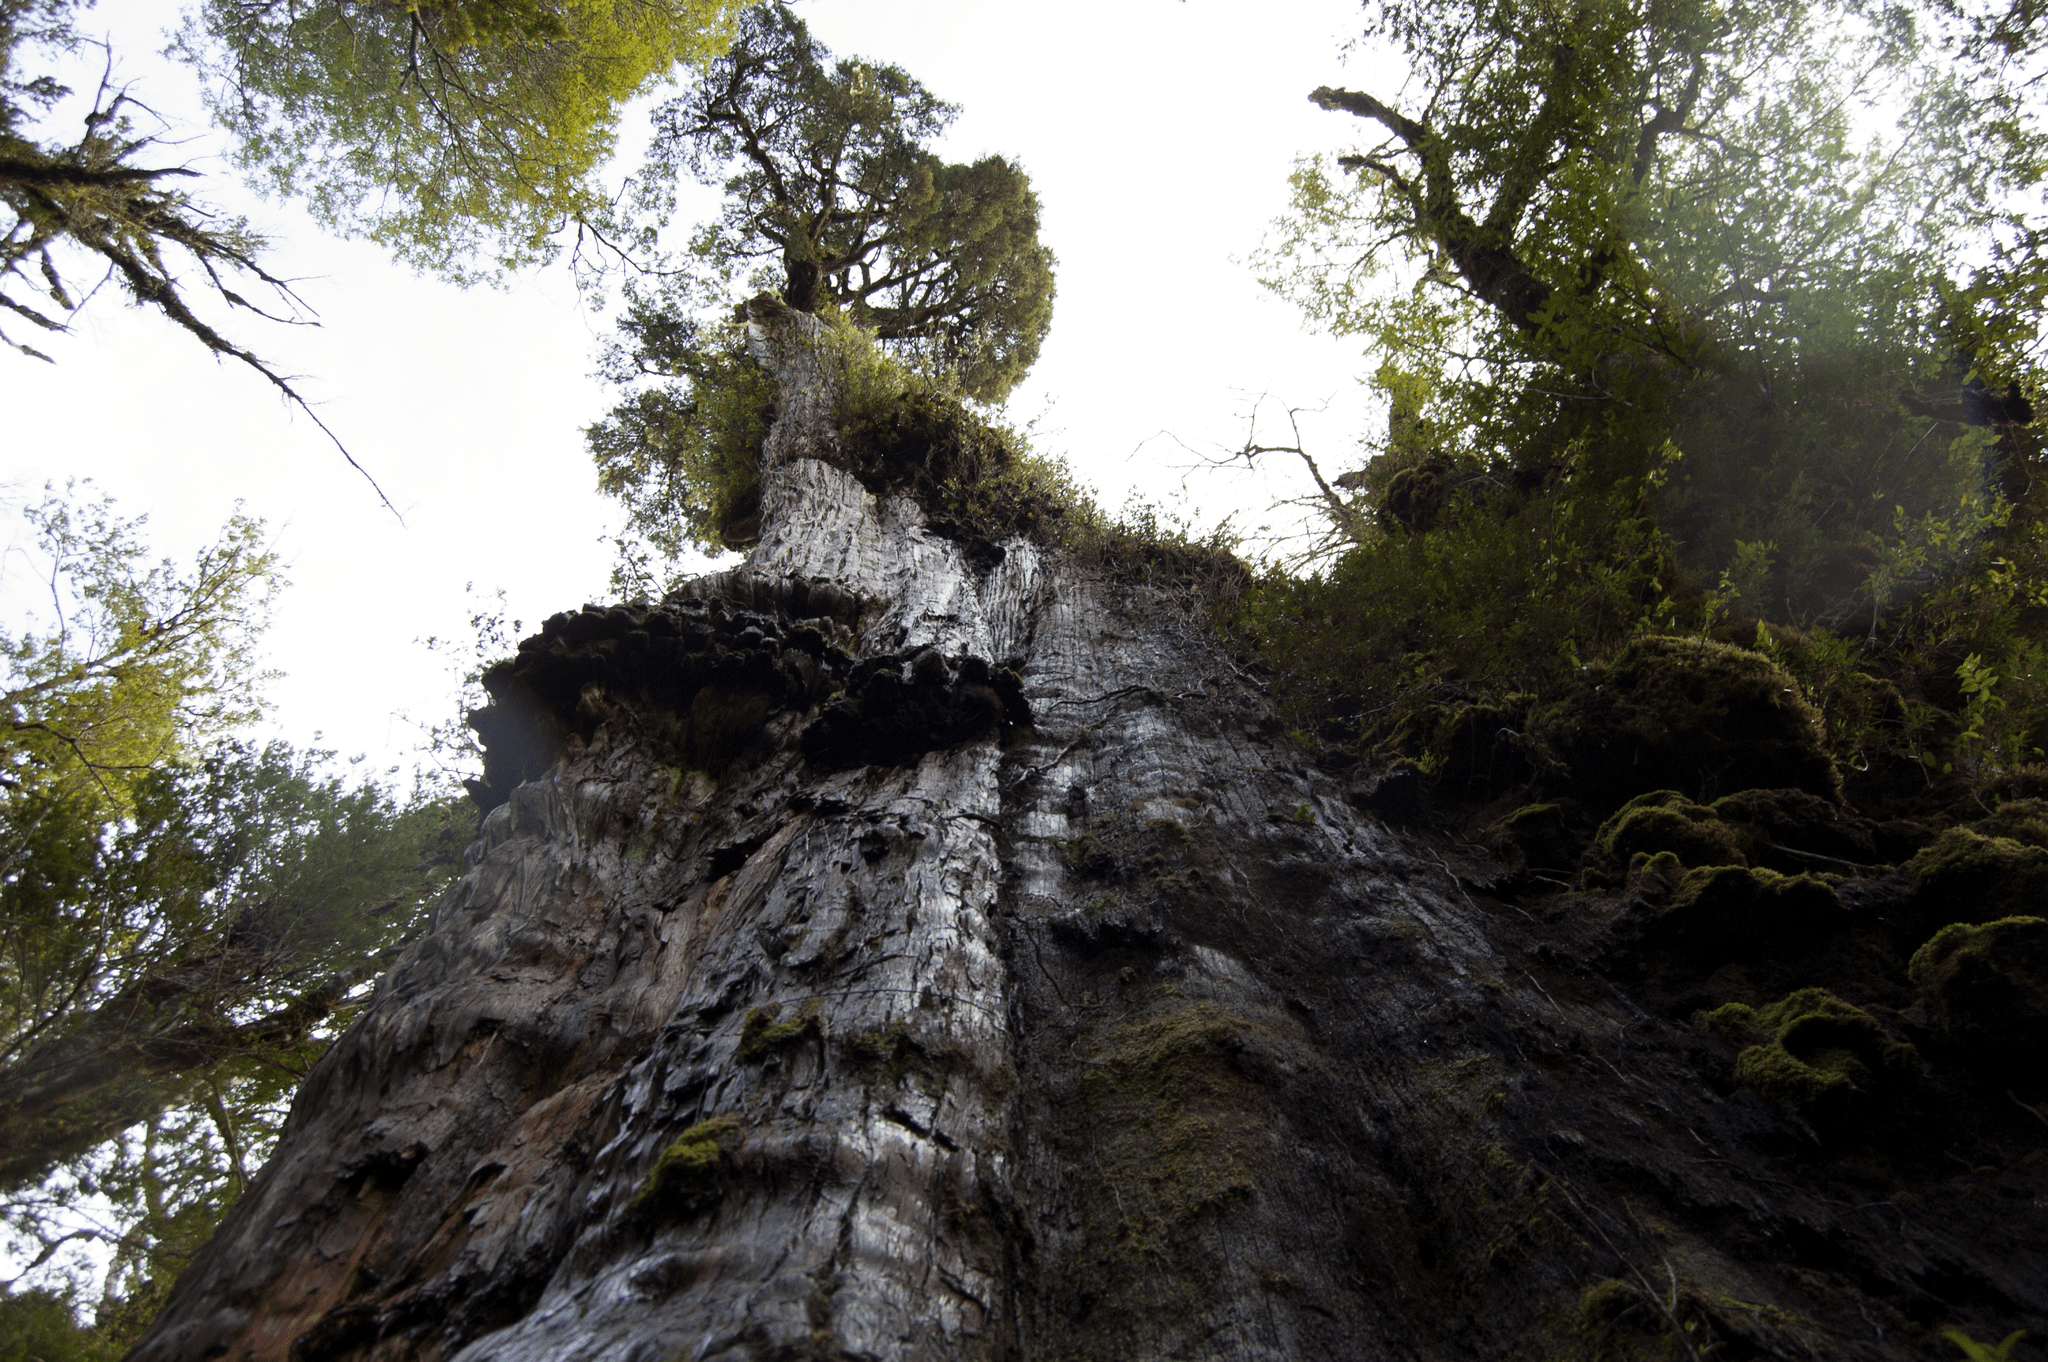 View looking up at the enormous, ancient tree Alerce